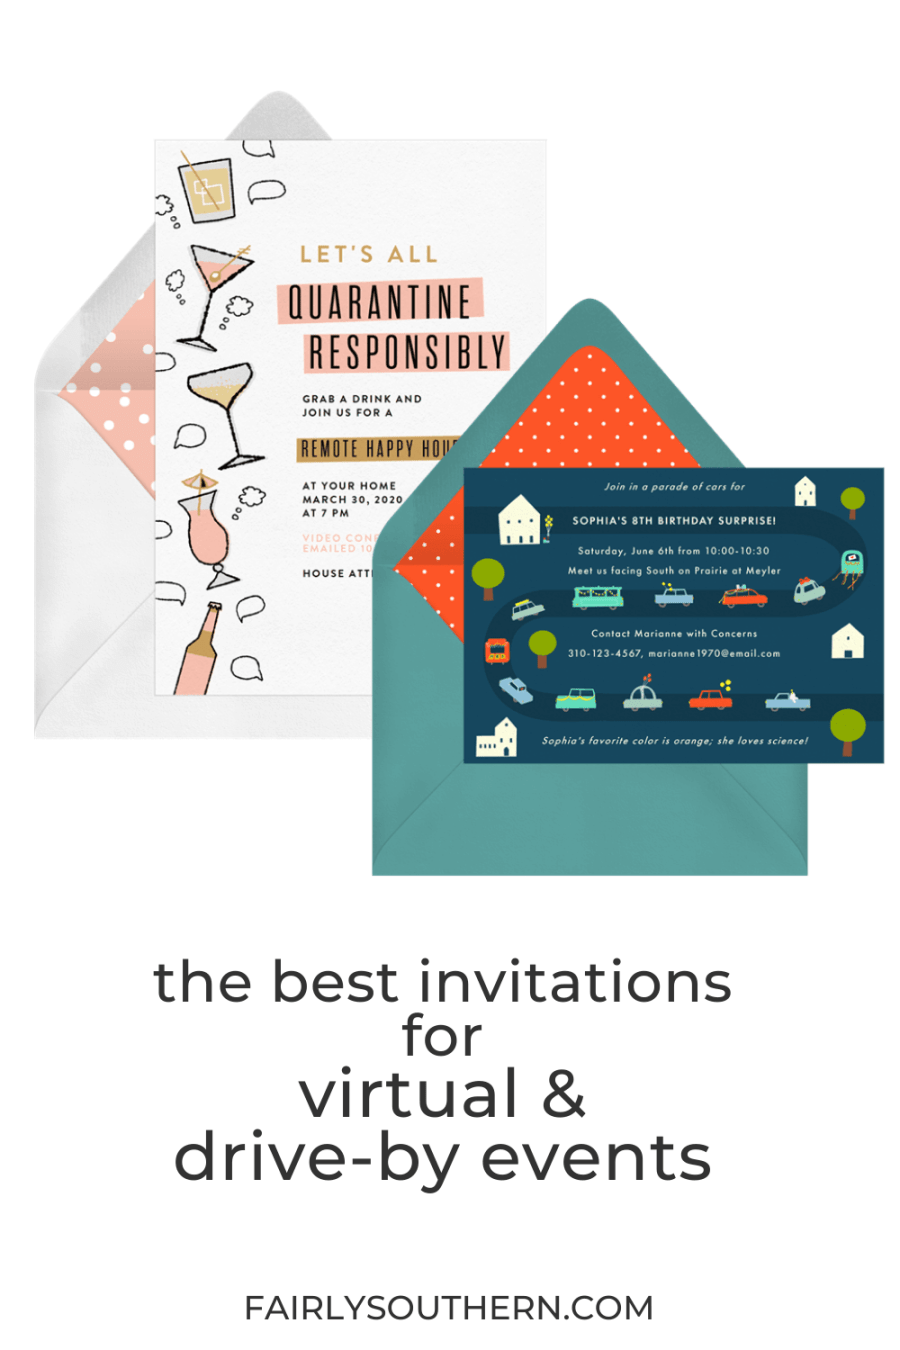 The Best Invitations for Virtual & Drive-By Parties